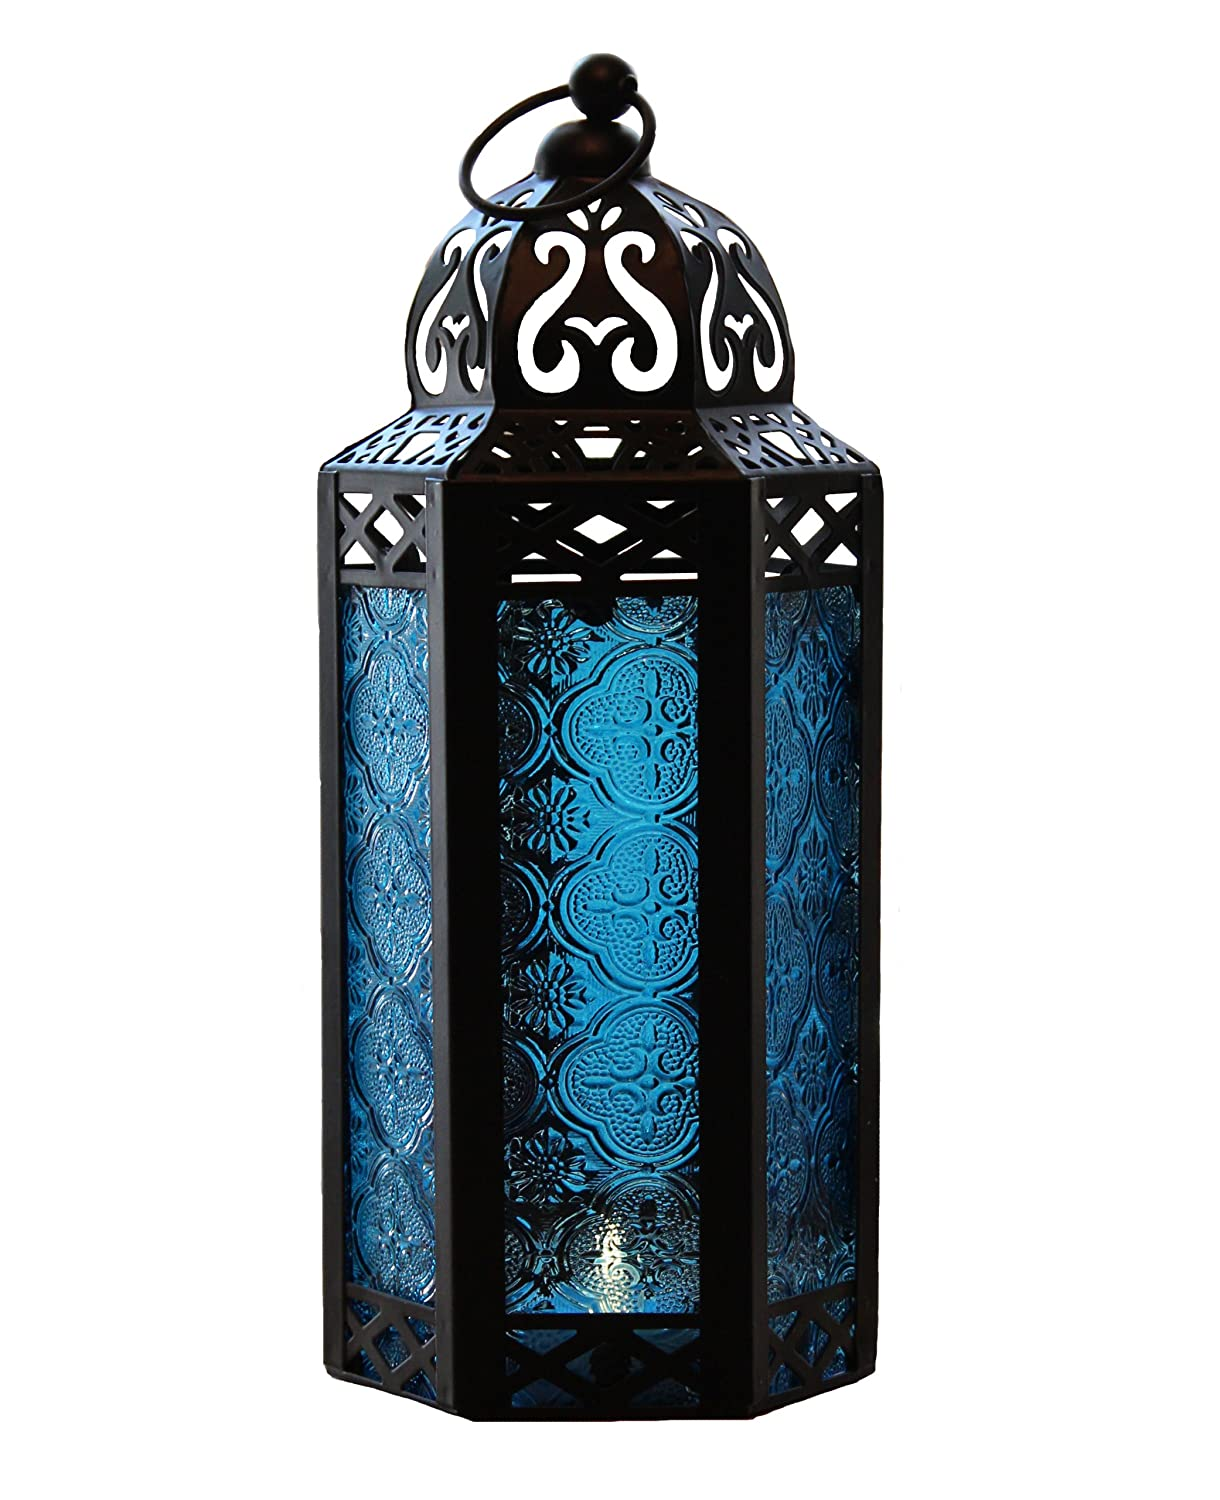 Hanging outdoor candle lanterns for patio - Vela Lanterns Mid Size Table Hanging Glass Hexagon Moroccan Candle Lantern Holders Blue